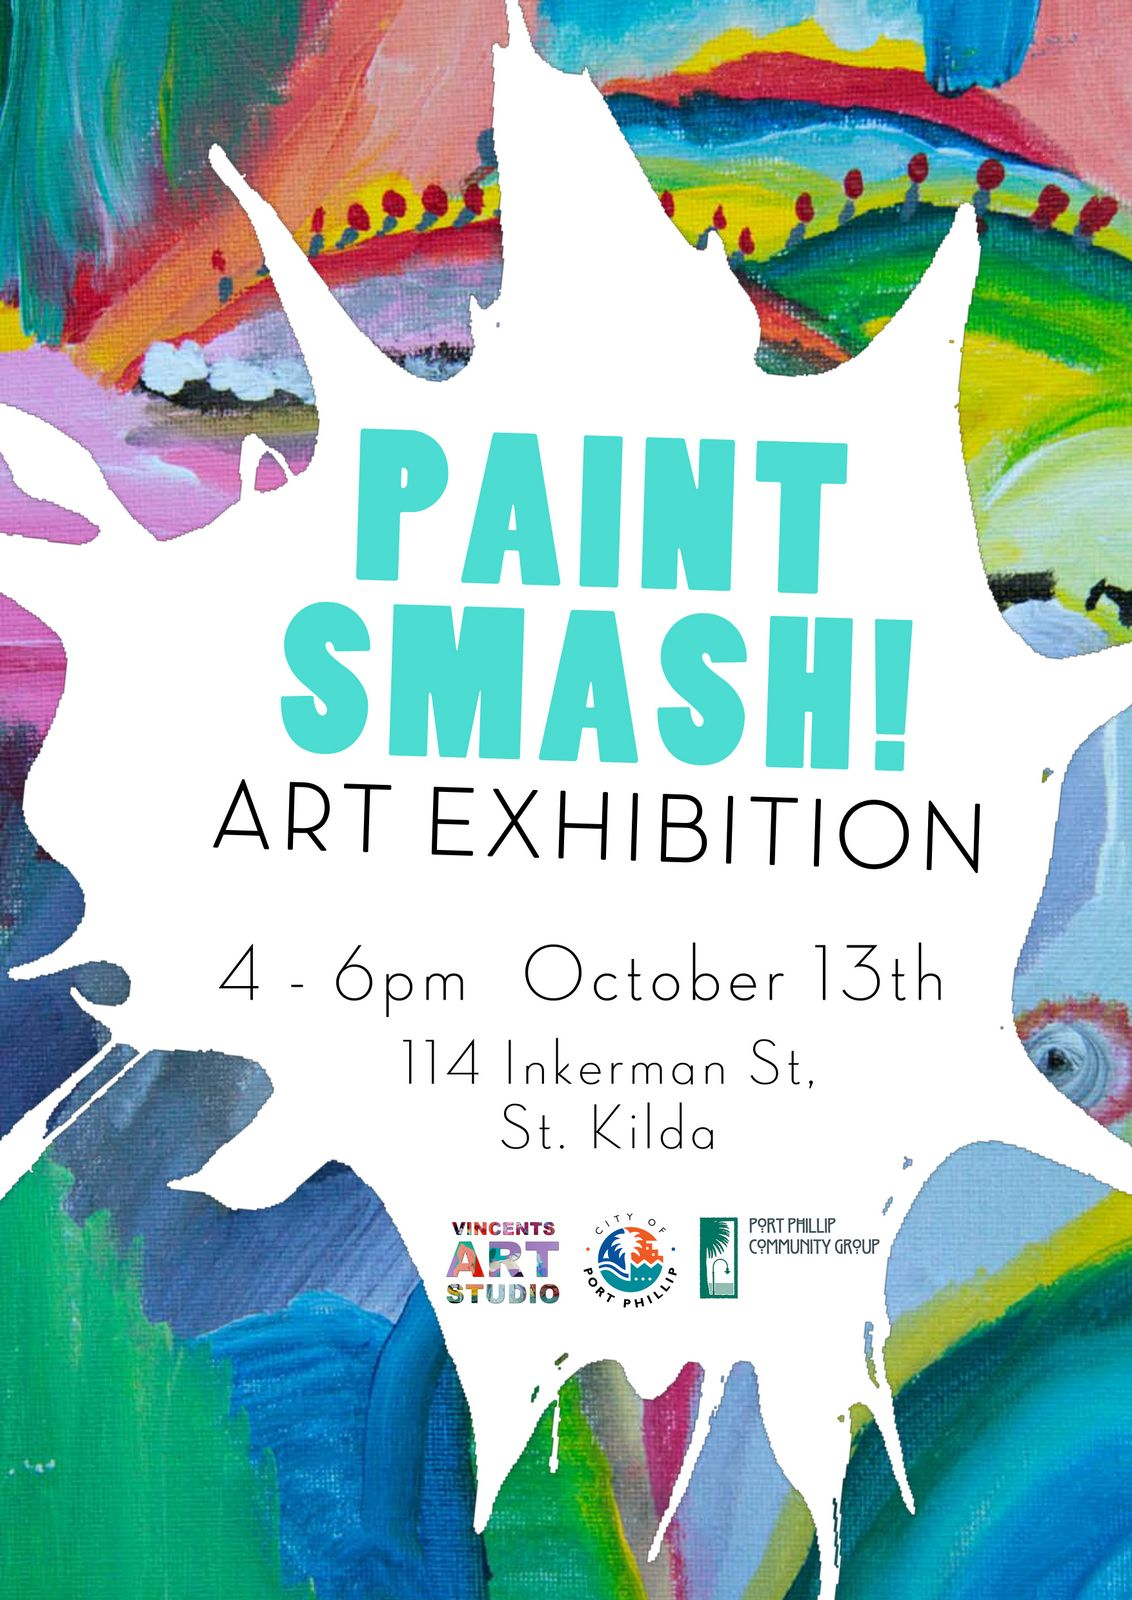 Student Art Show Posters Google Search Art Exhibition Posters Exhibition Poster Art Exhibition